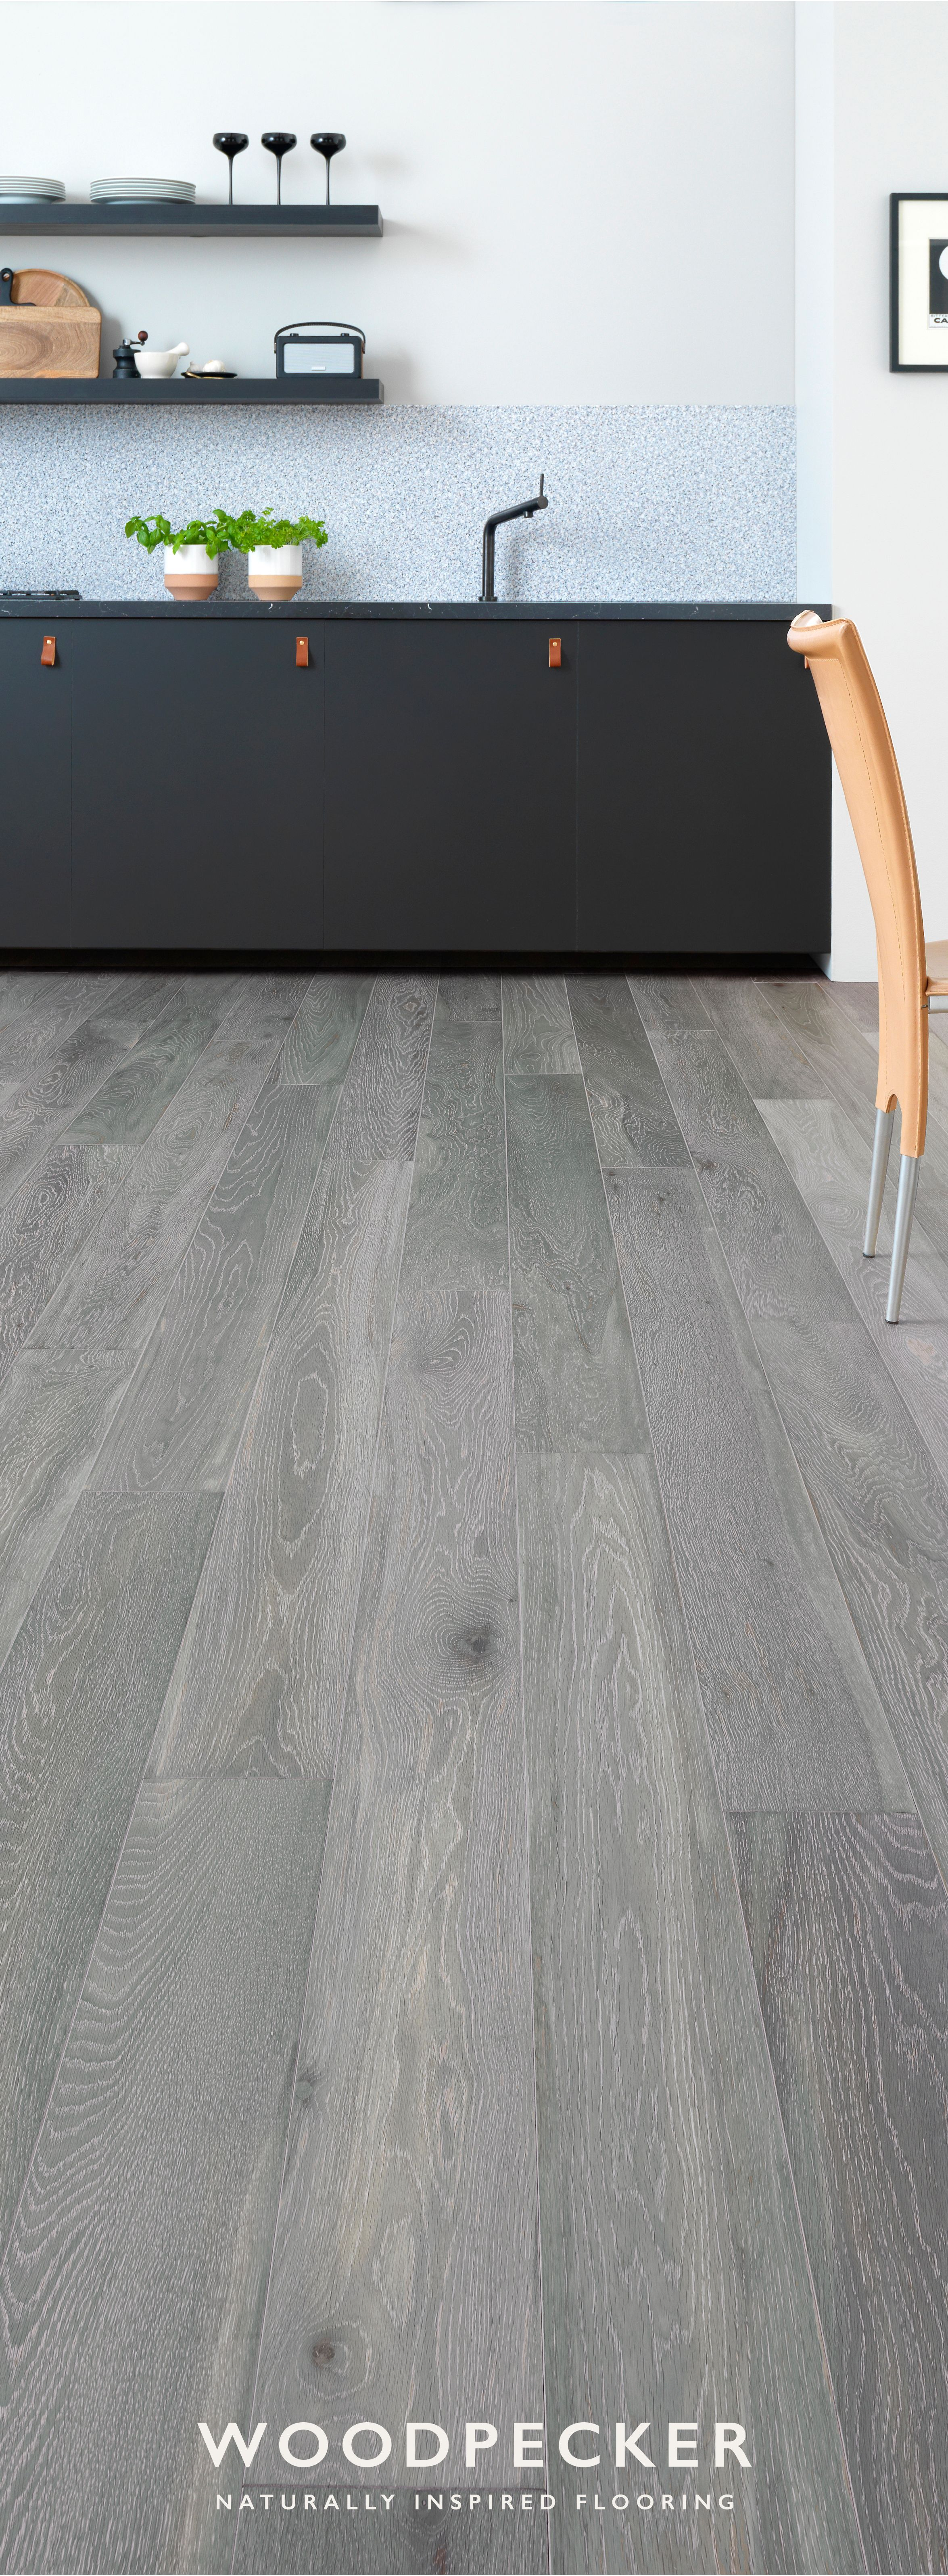 Harlech Stormy Oak Is A Dreamy Fusion Of Grey Hues